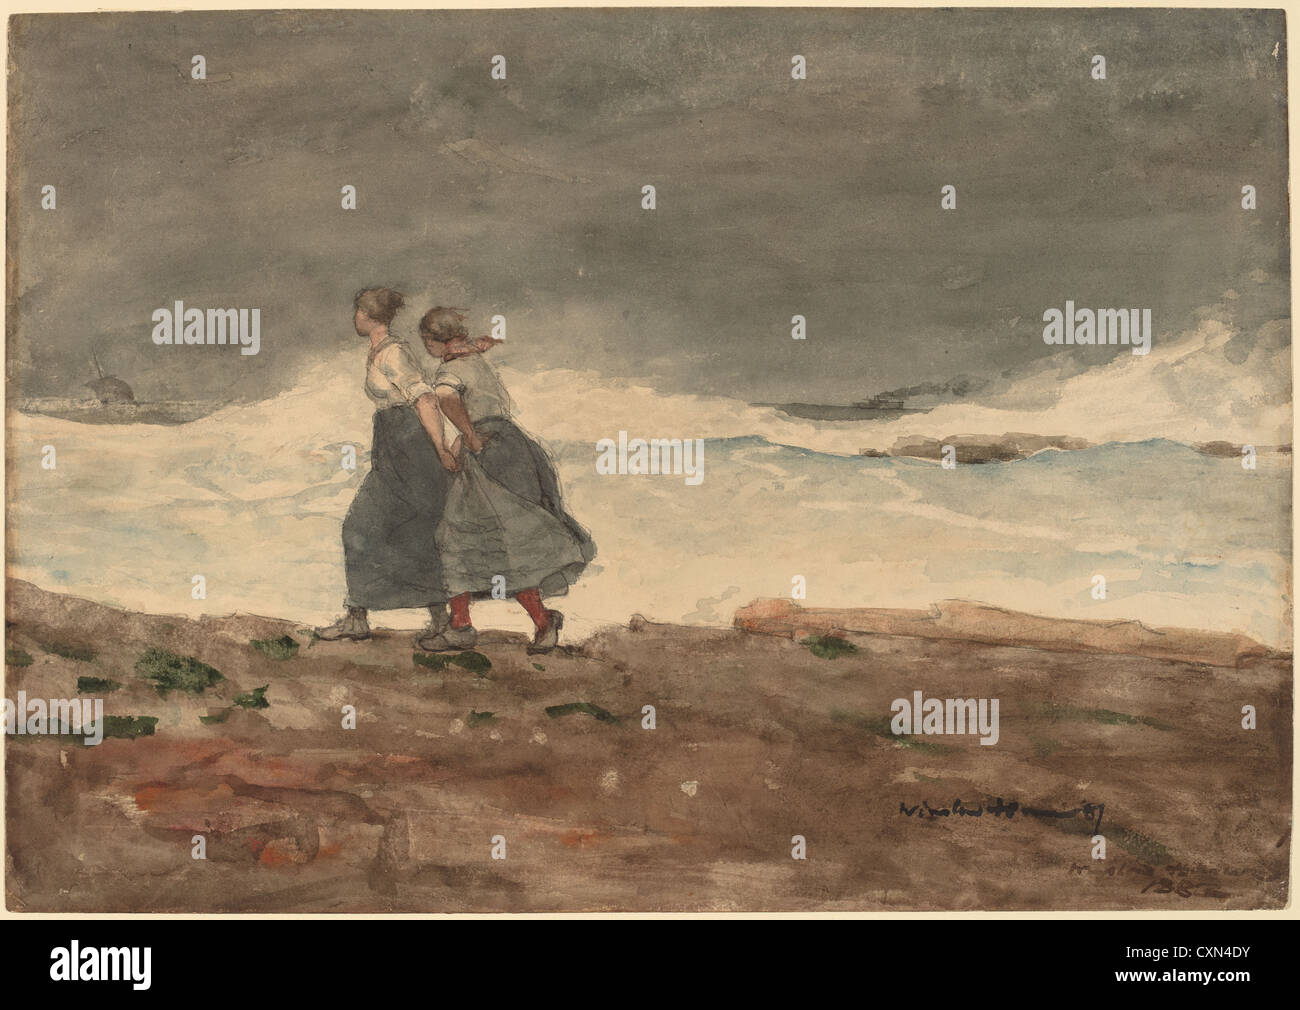 Winslow Homer, Danger, American, 1836 - 1910, 1883 and 1887, watercolor and gouache over graphite - Stock Image